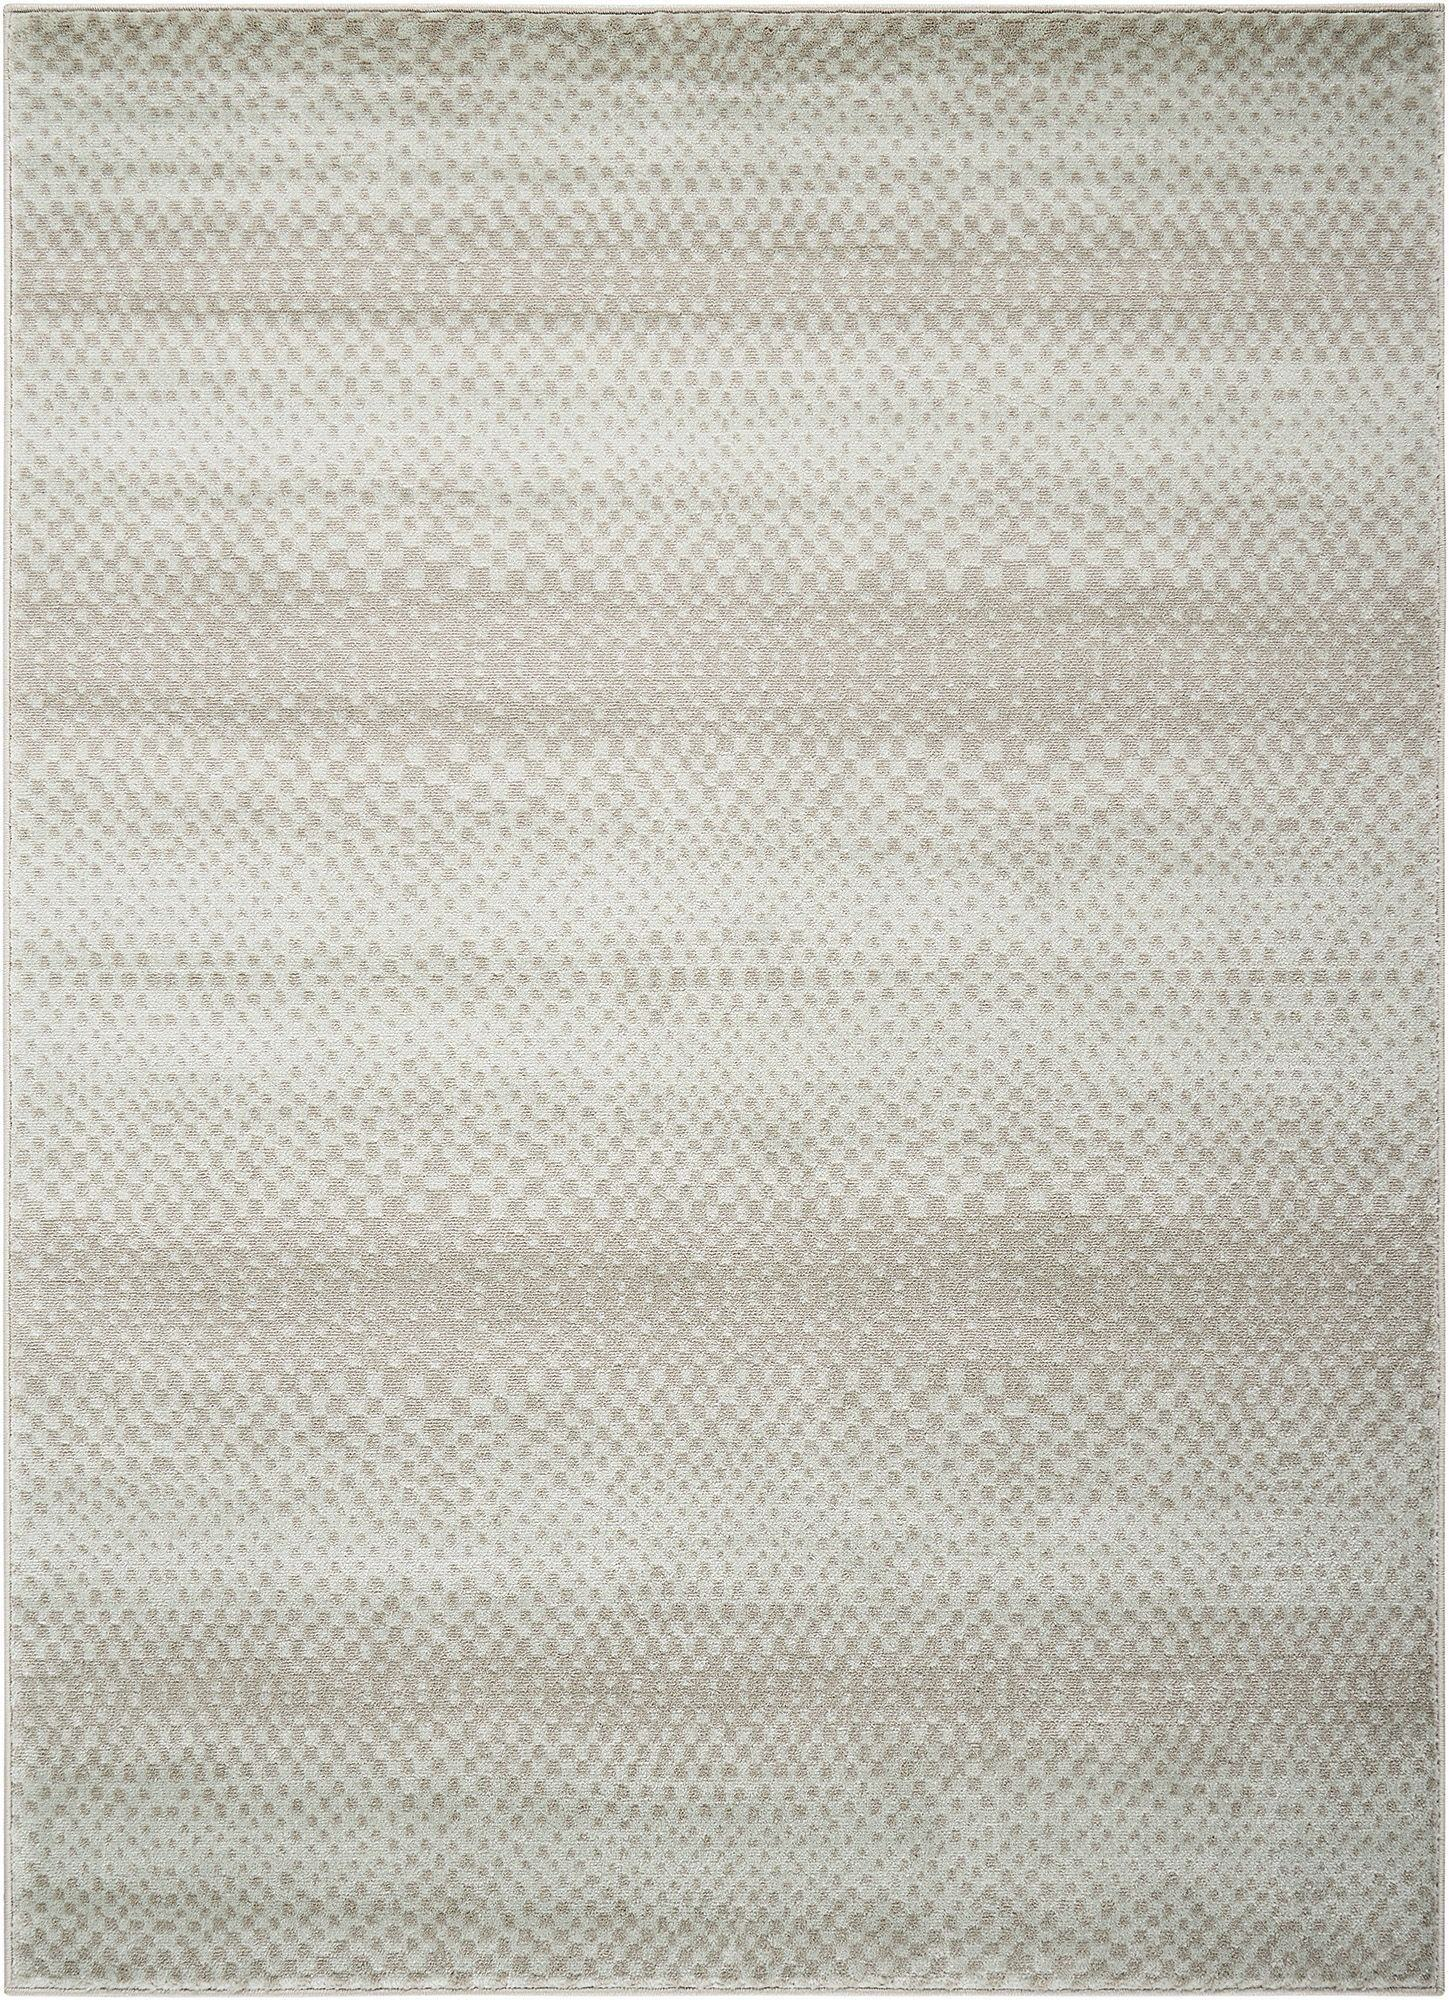 970219l Multi Tonal Light Blue Gray Rug 6 7 X 9 6 By Scott Living